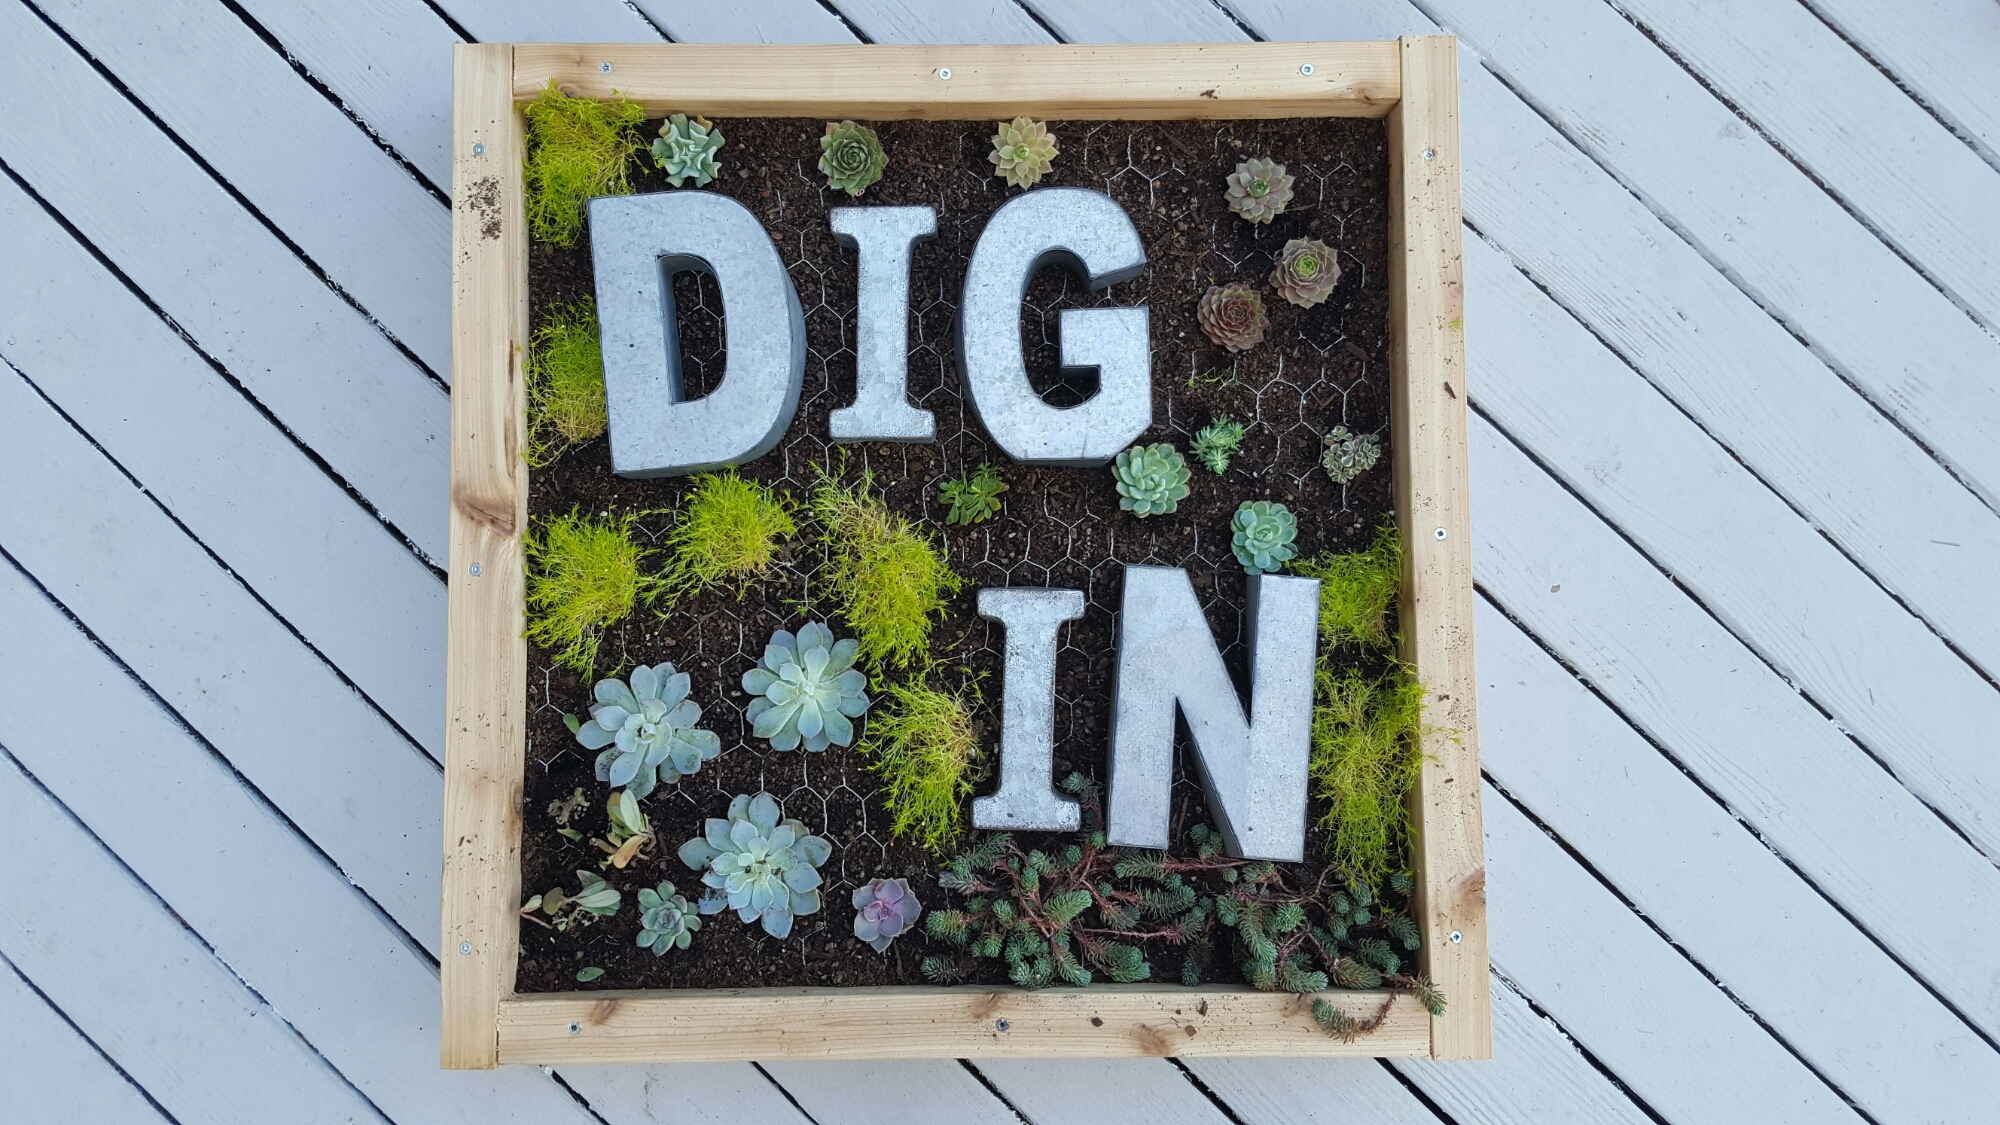 Build mastery in small ways like building a succulent planter.